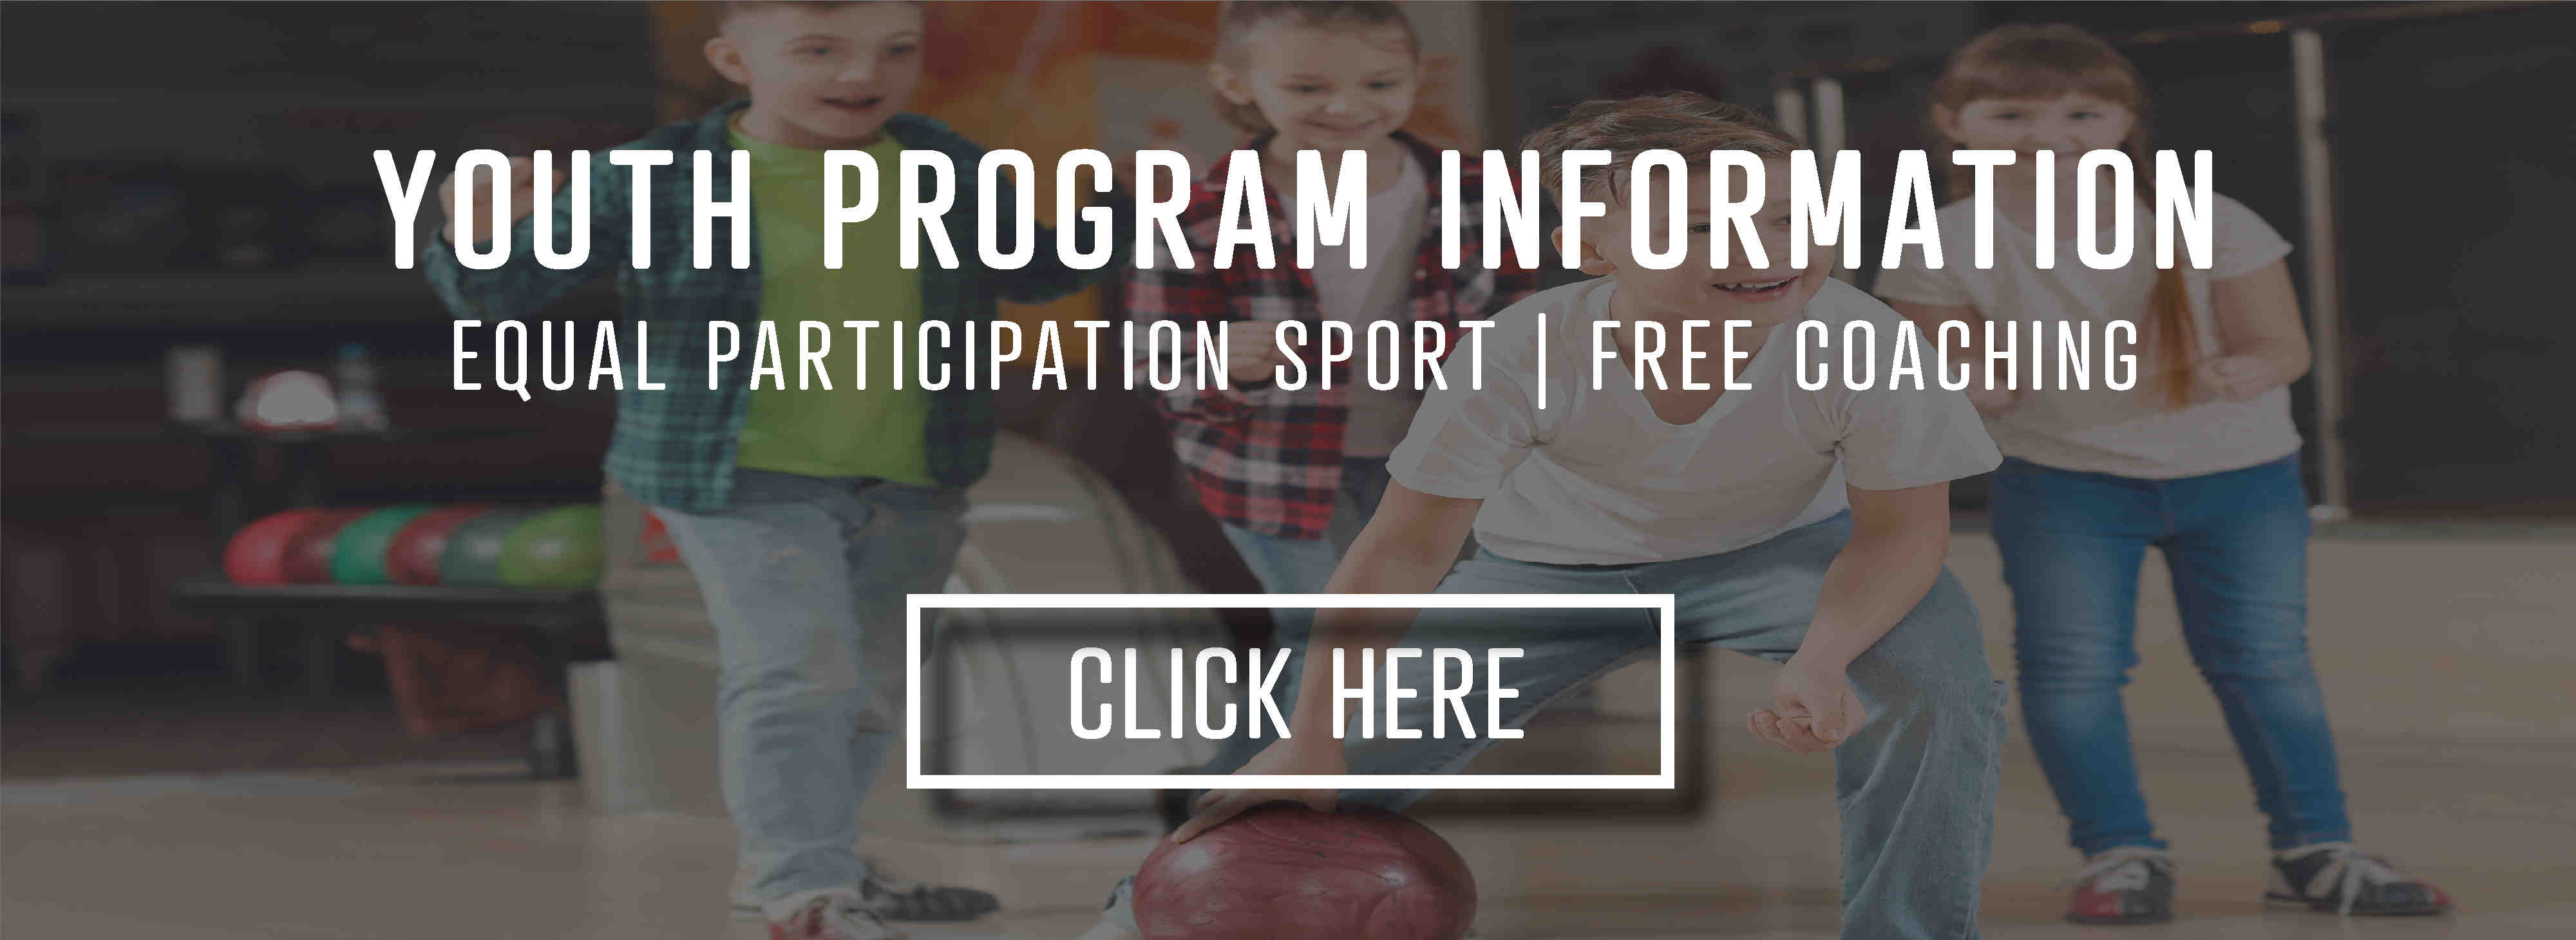 Youth and teen program information - click here